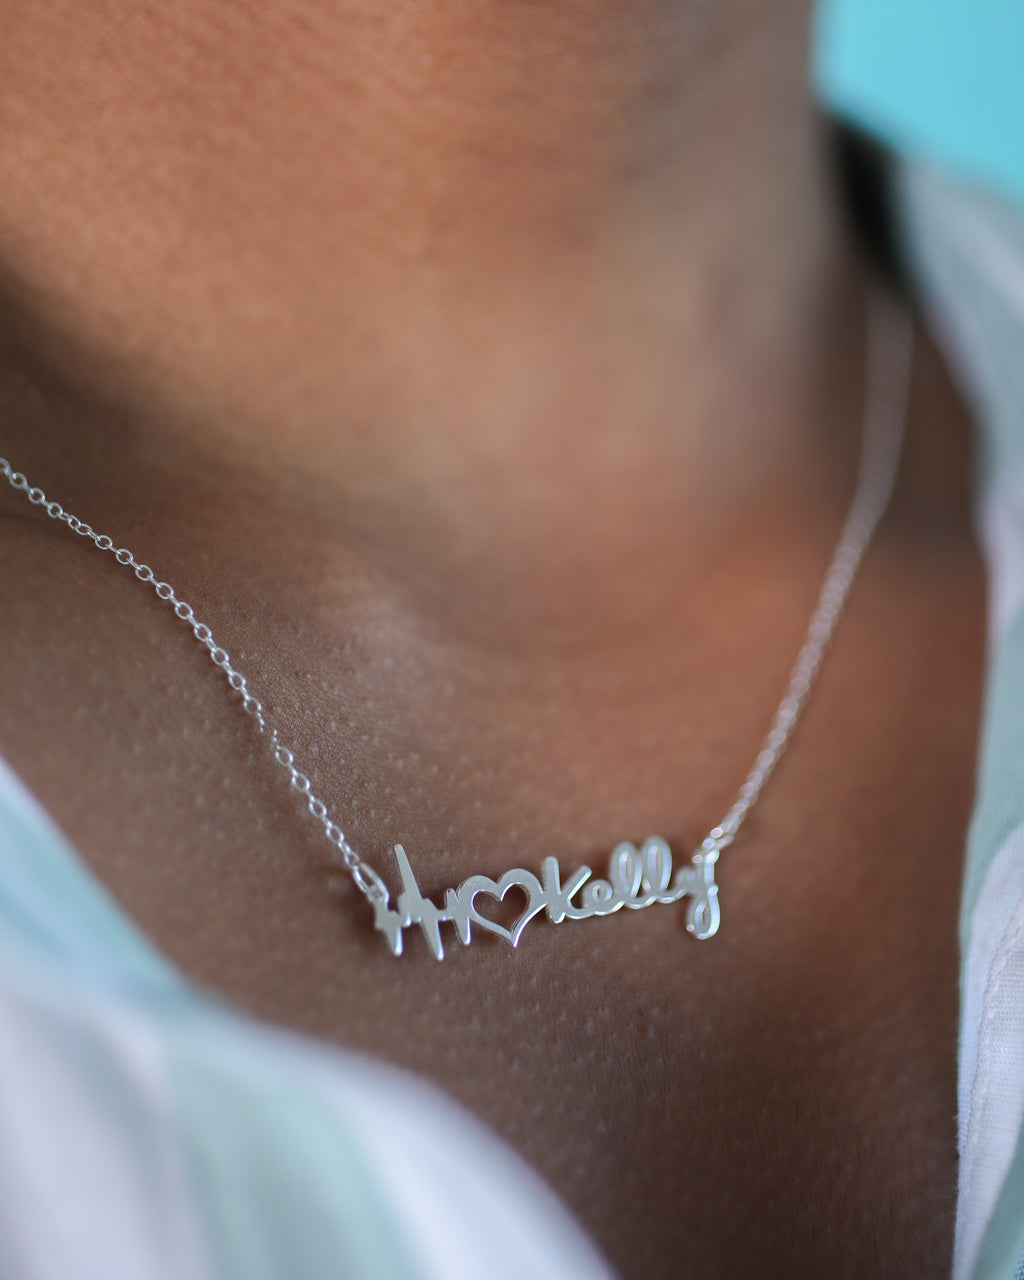 The Emma Love Name Necklace